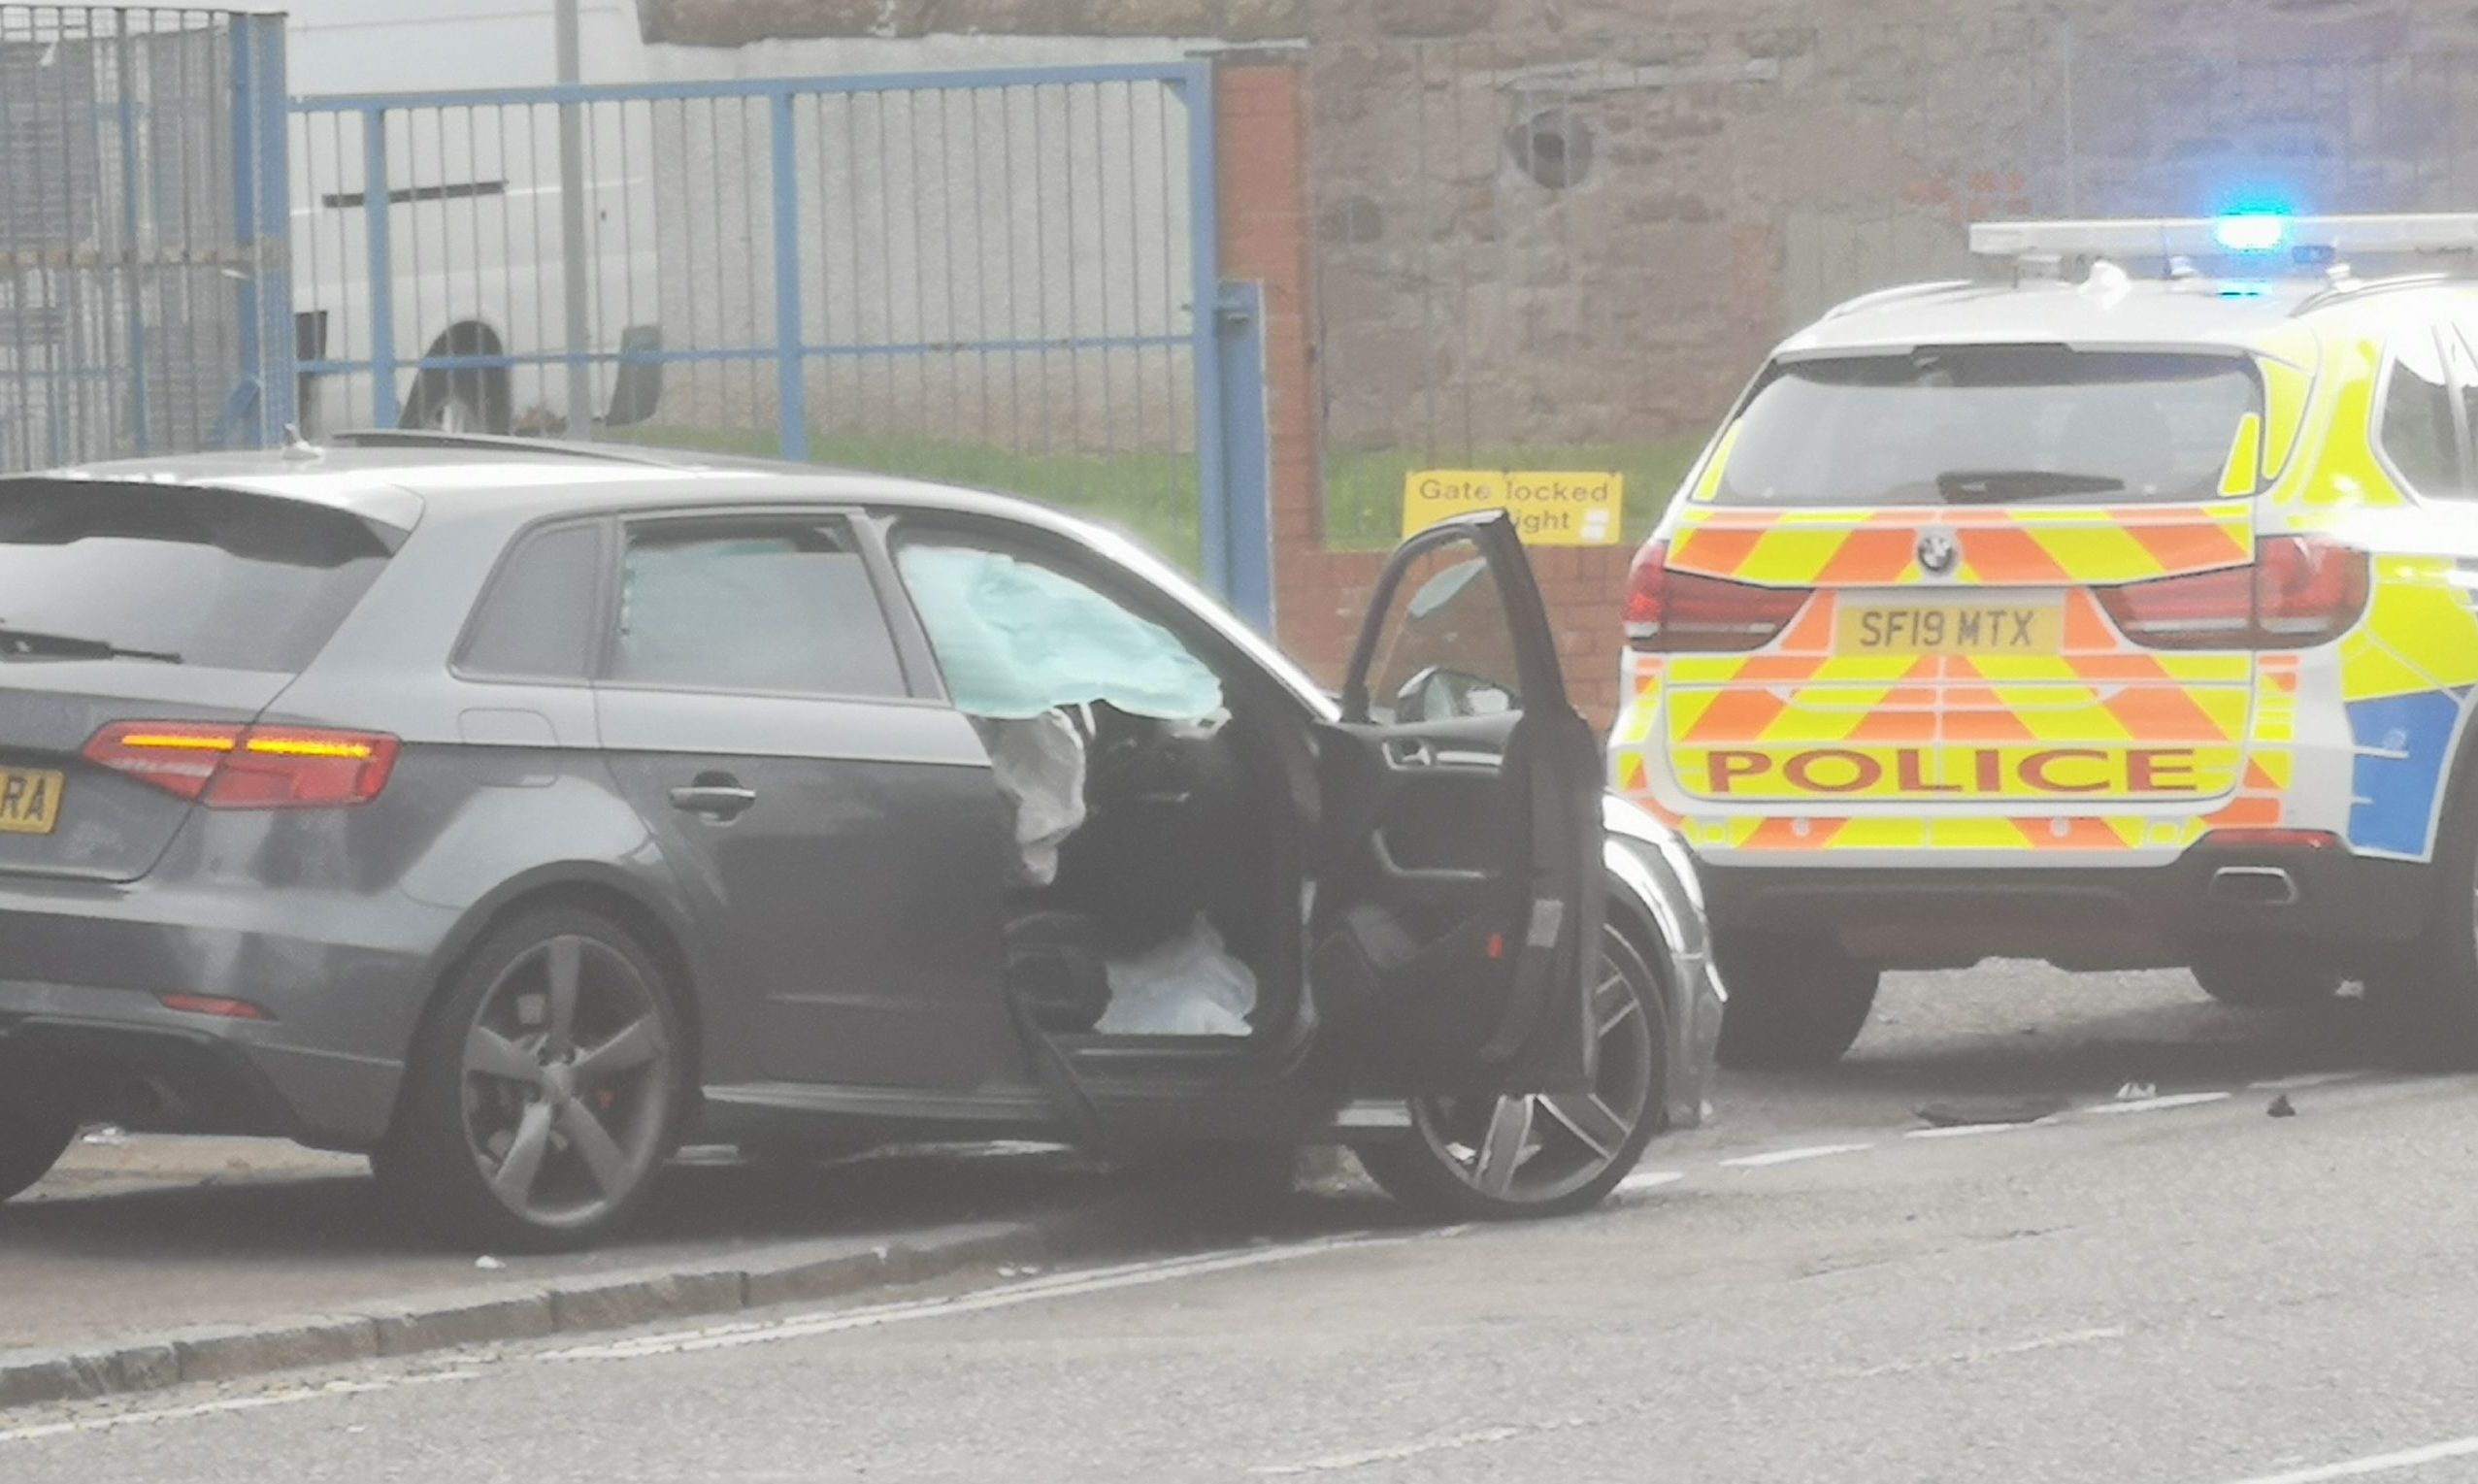 The smashed car on Clepington Road this morning.